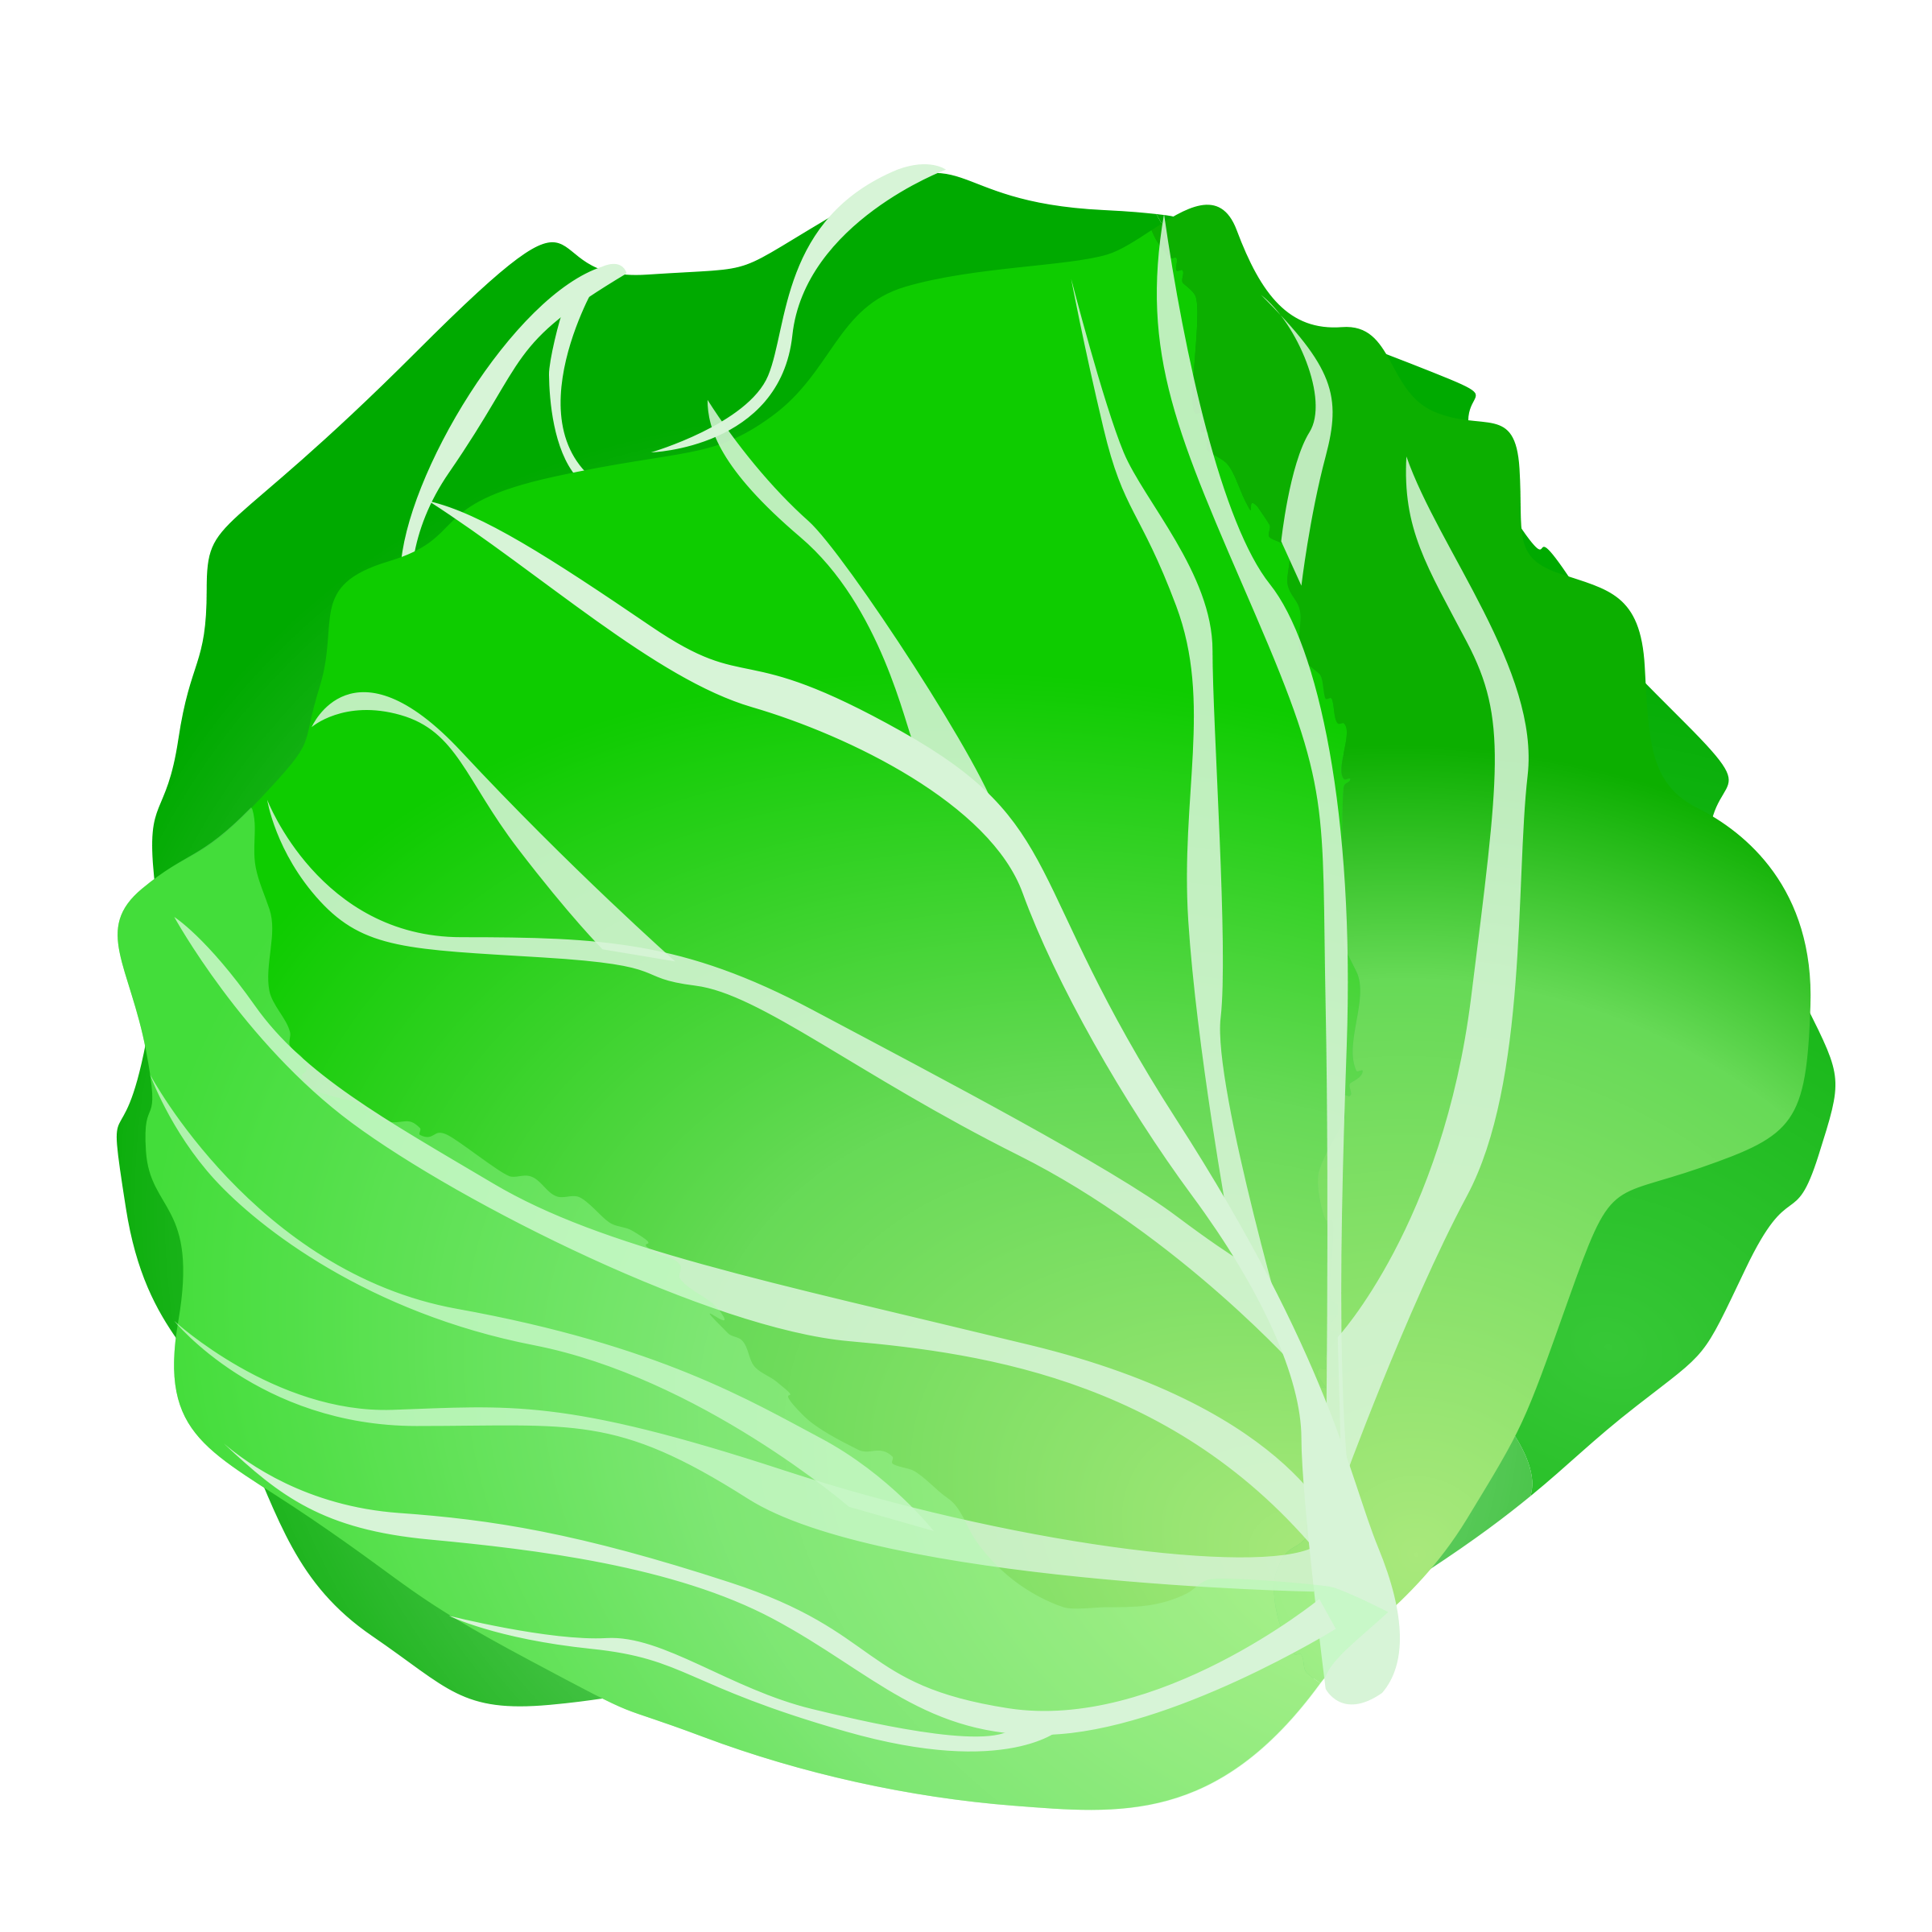 Lettuce clip art hdclipartall free clipart